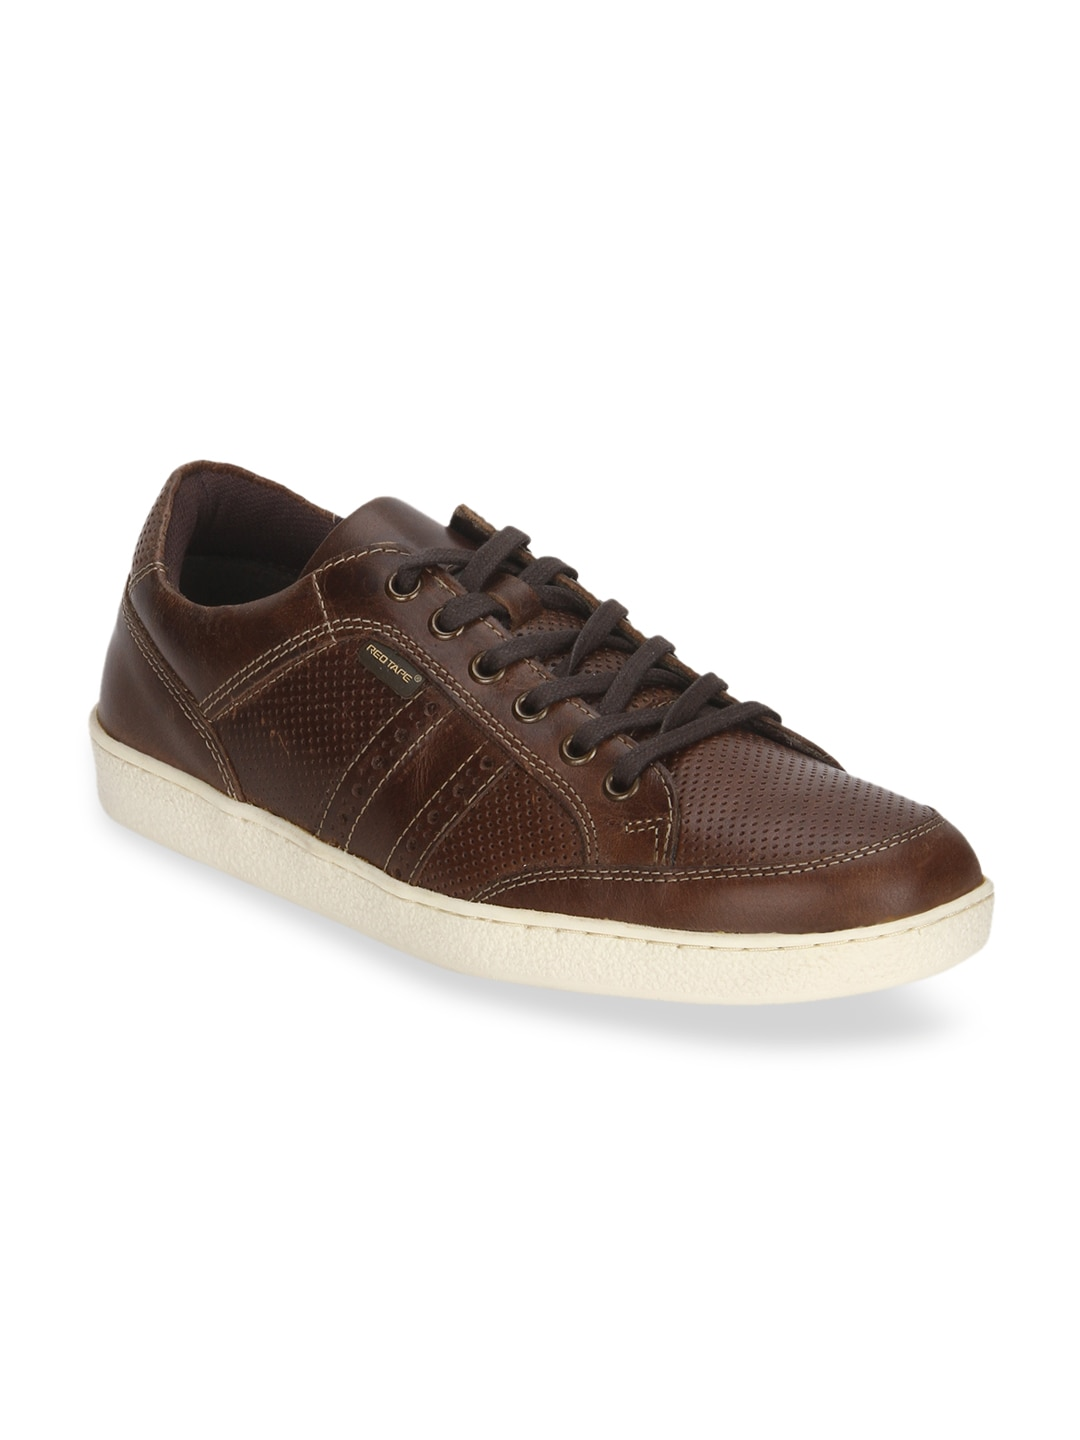 167344618c2c Brown Casual Shoes - Buy Brown Casual Shoes For Men   Women Online